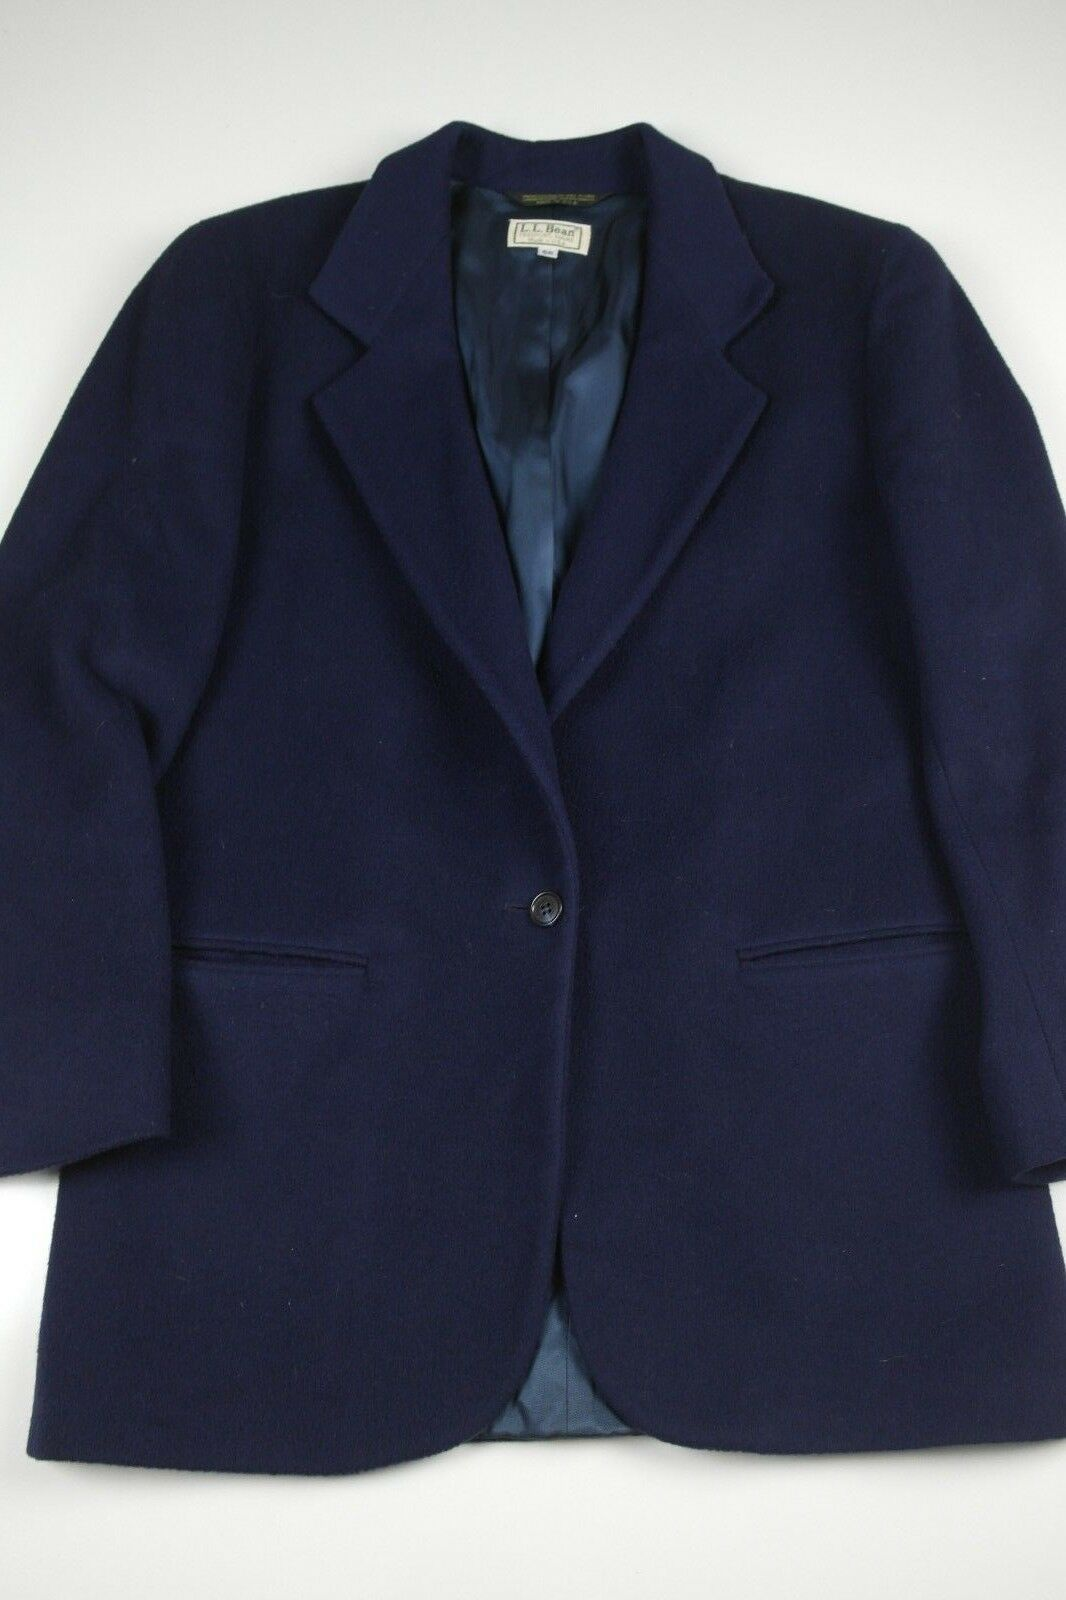 Vtg LL Bean Wool Blazer Mens Size 6R Navy Suit Coat Single Button Made in USA